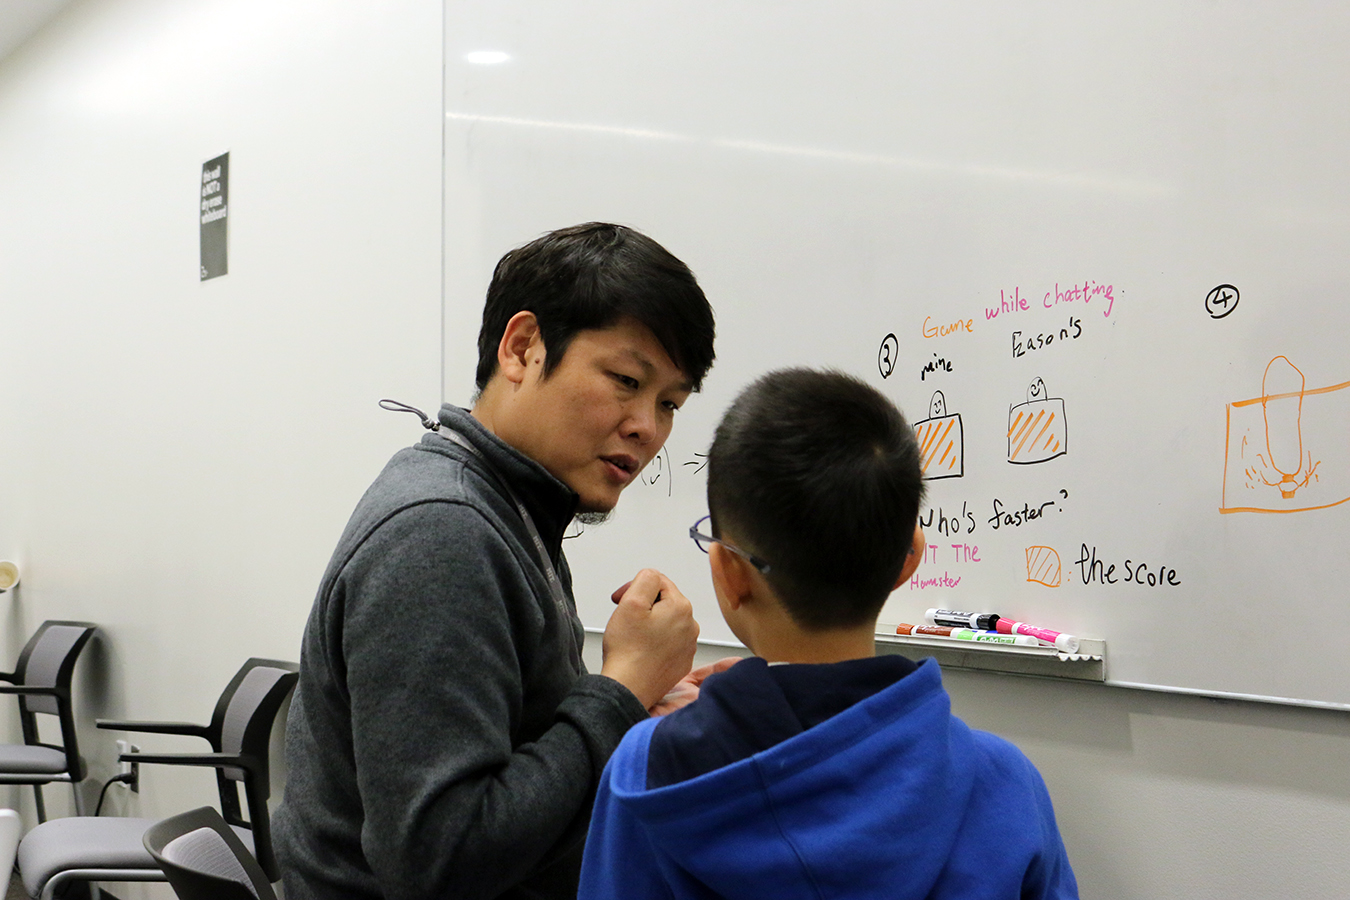 Yang Liu(left) gets feedback from Arthur Liu(right), who has a younger brother in Shanghai.